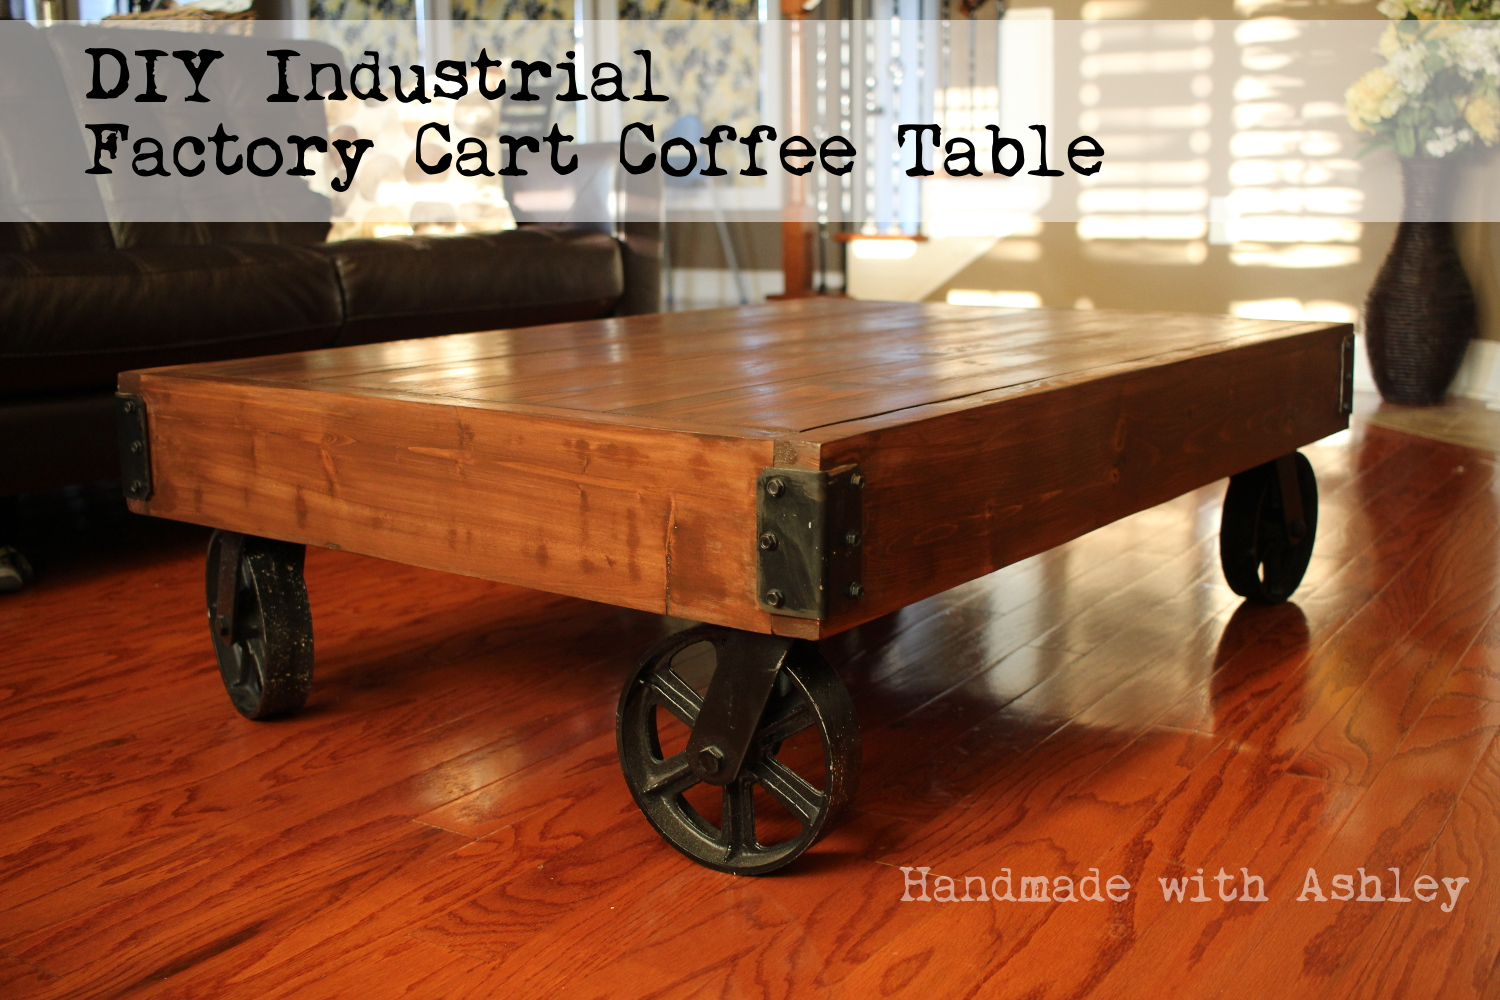 DIY Industrial Factory Cart Coffee Table (Plans by Rogue ...